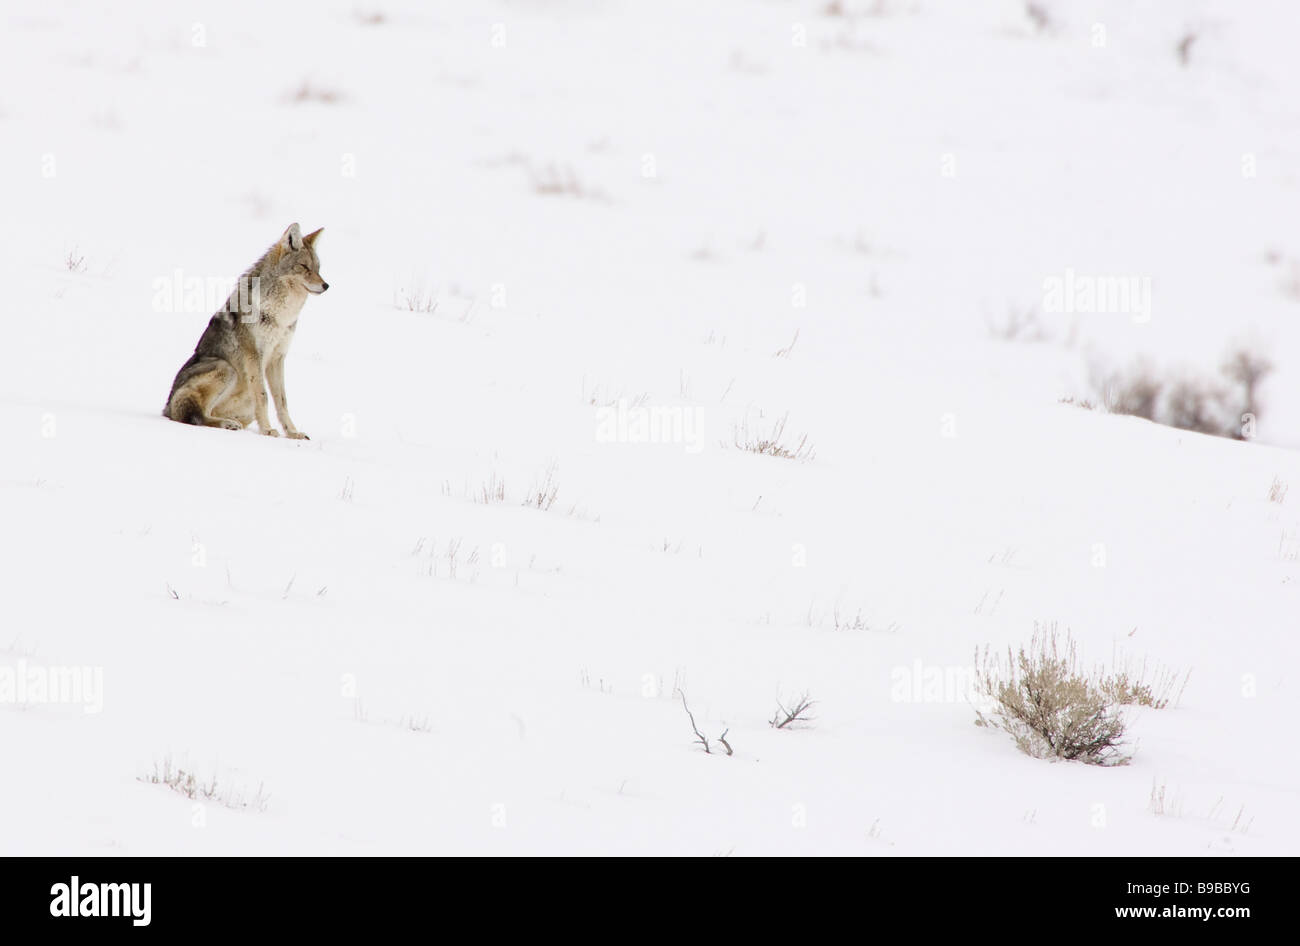 Coyote Sitting on a Snowy Hillside Canis latrans - Stock Image